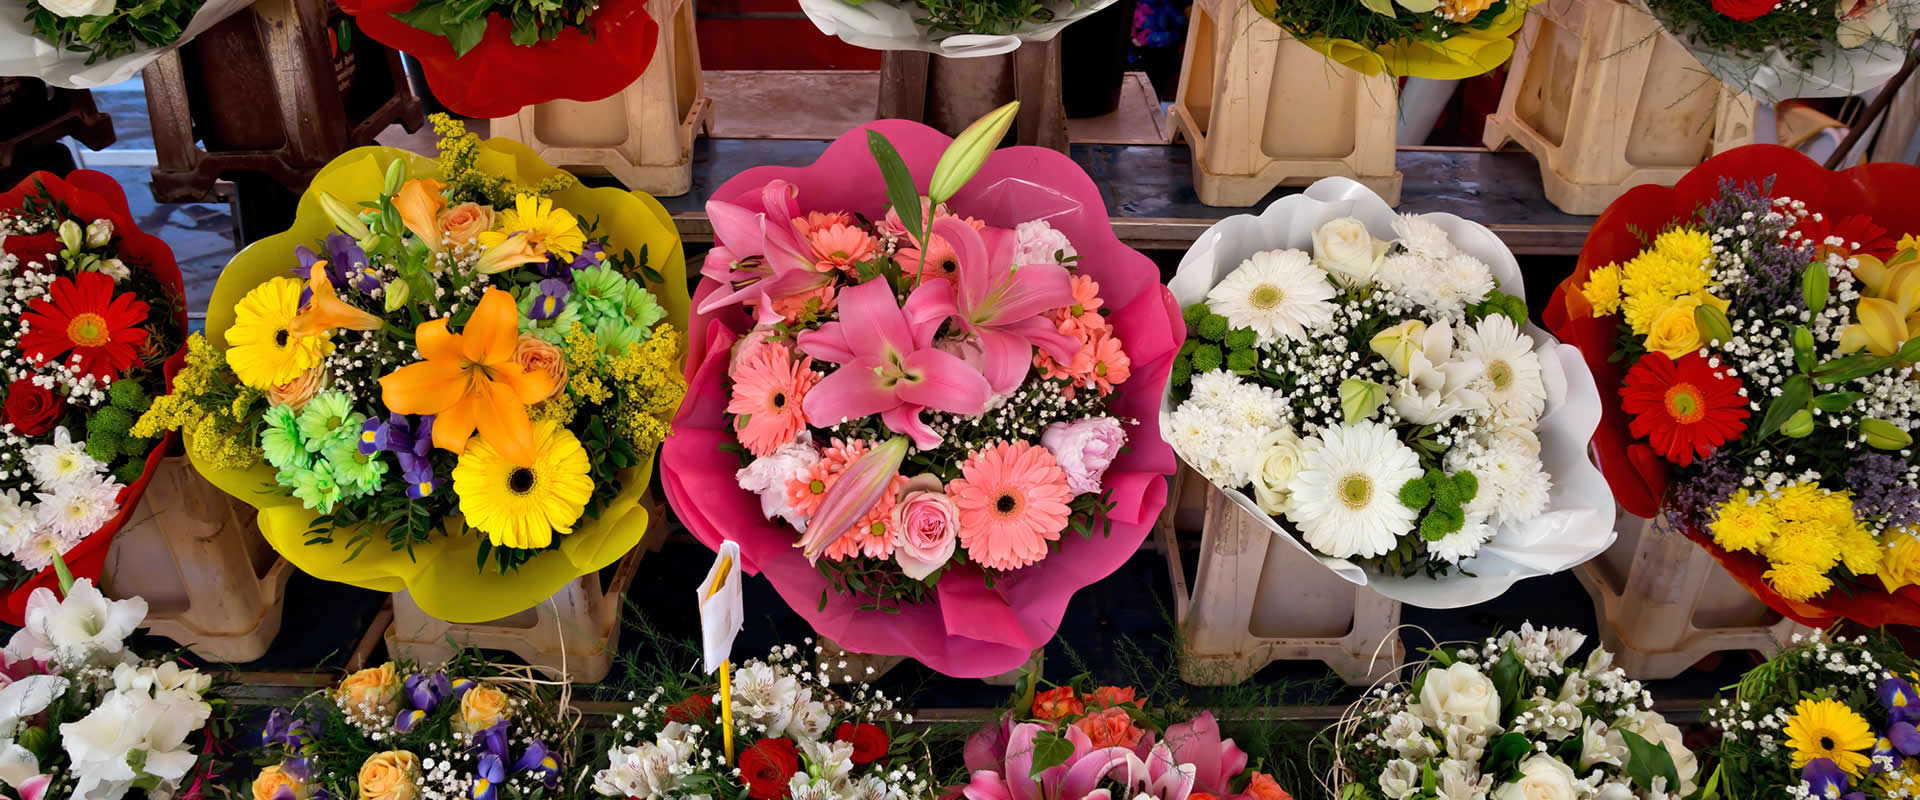 Coastline Flowers - Bay Area Wholesale Flower Bouquet Distributors